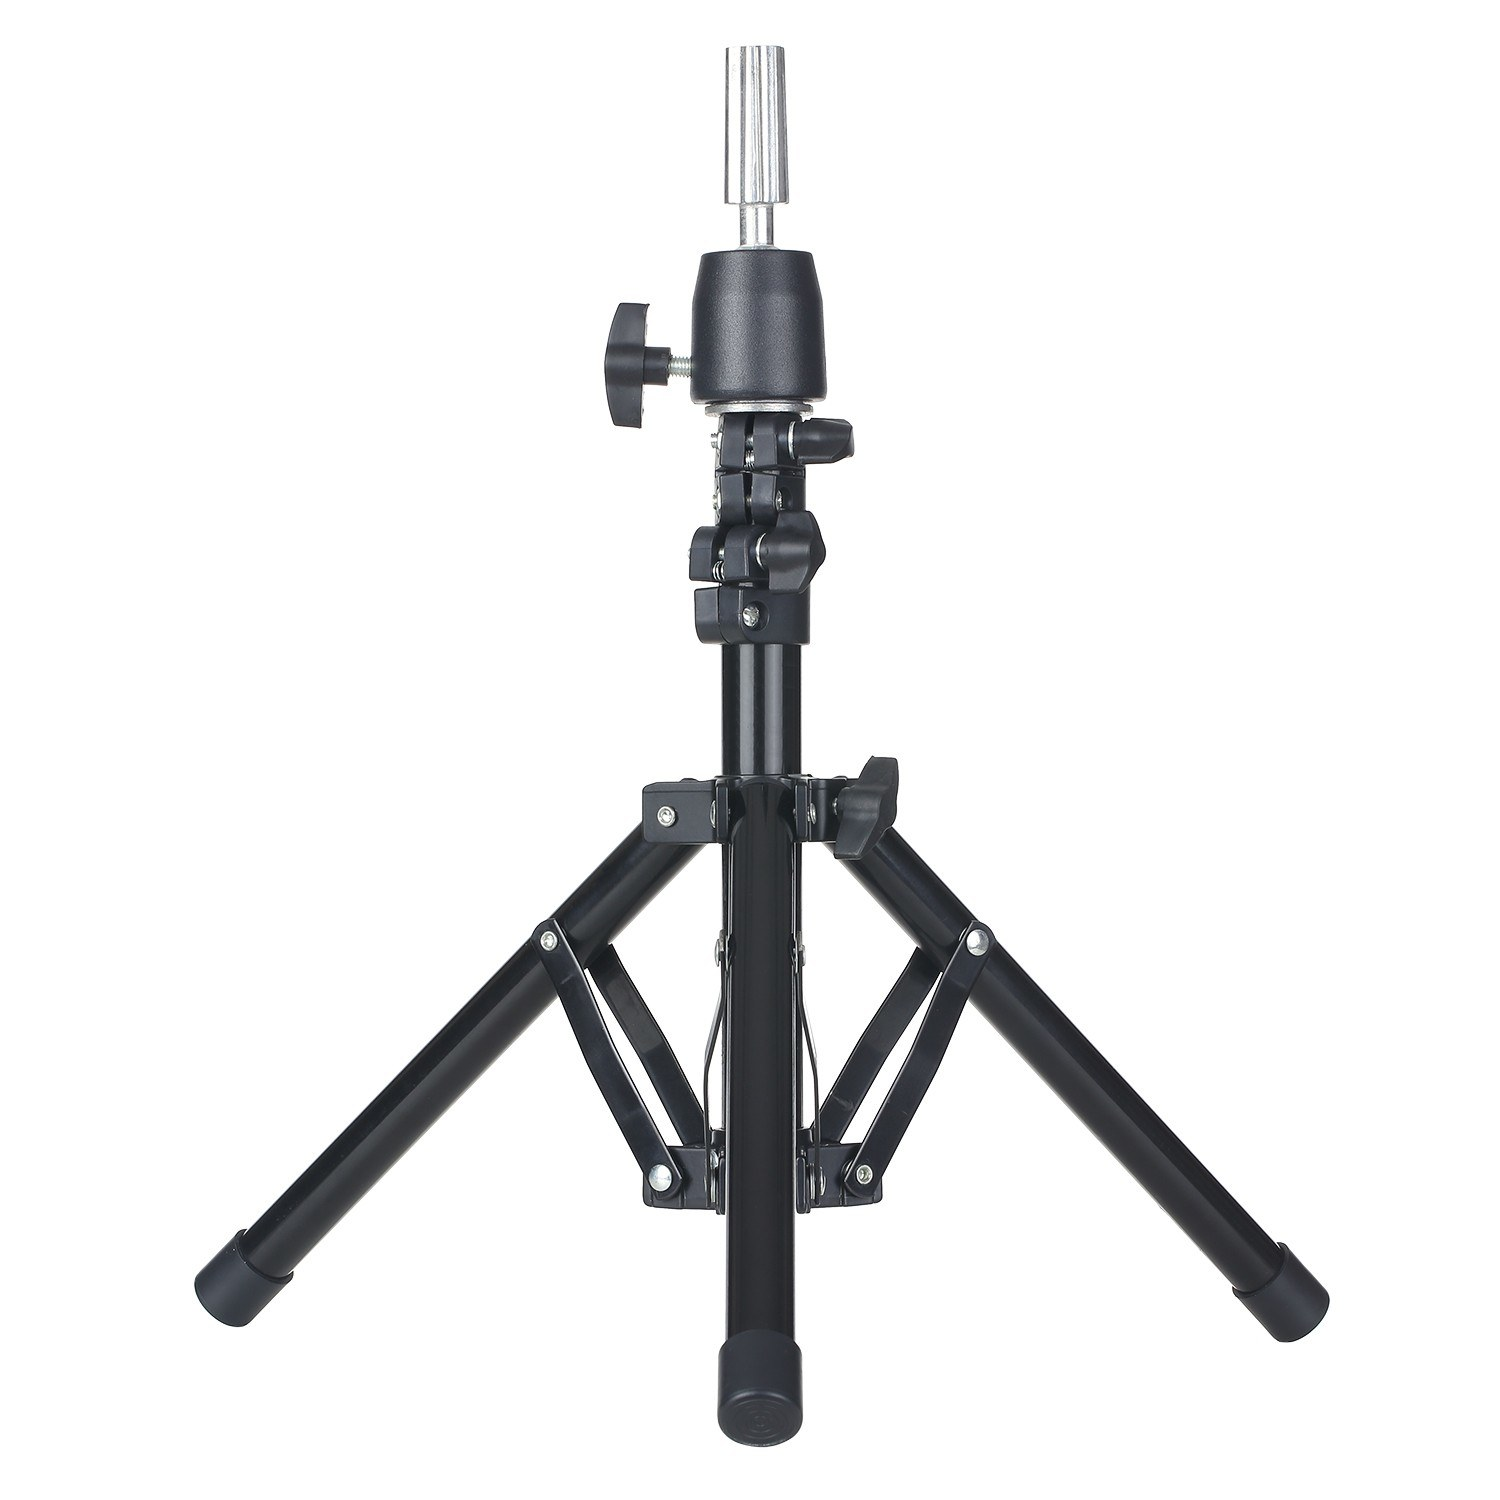 Cafago - 70% OFF Wig Stand Tripod with Cloth Storage Bag Non-Slip Base Adjustable Mannequin Head Stand,free shipping+$22.71